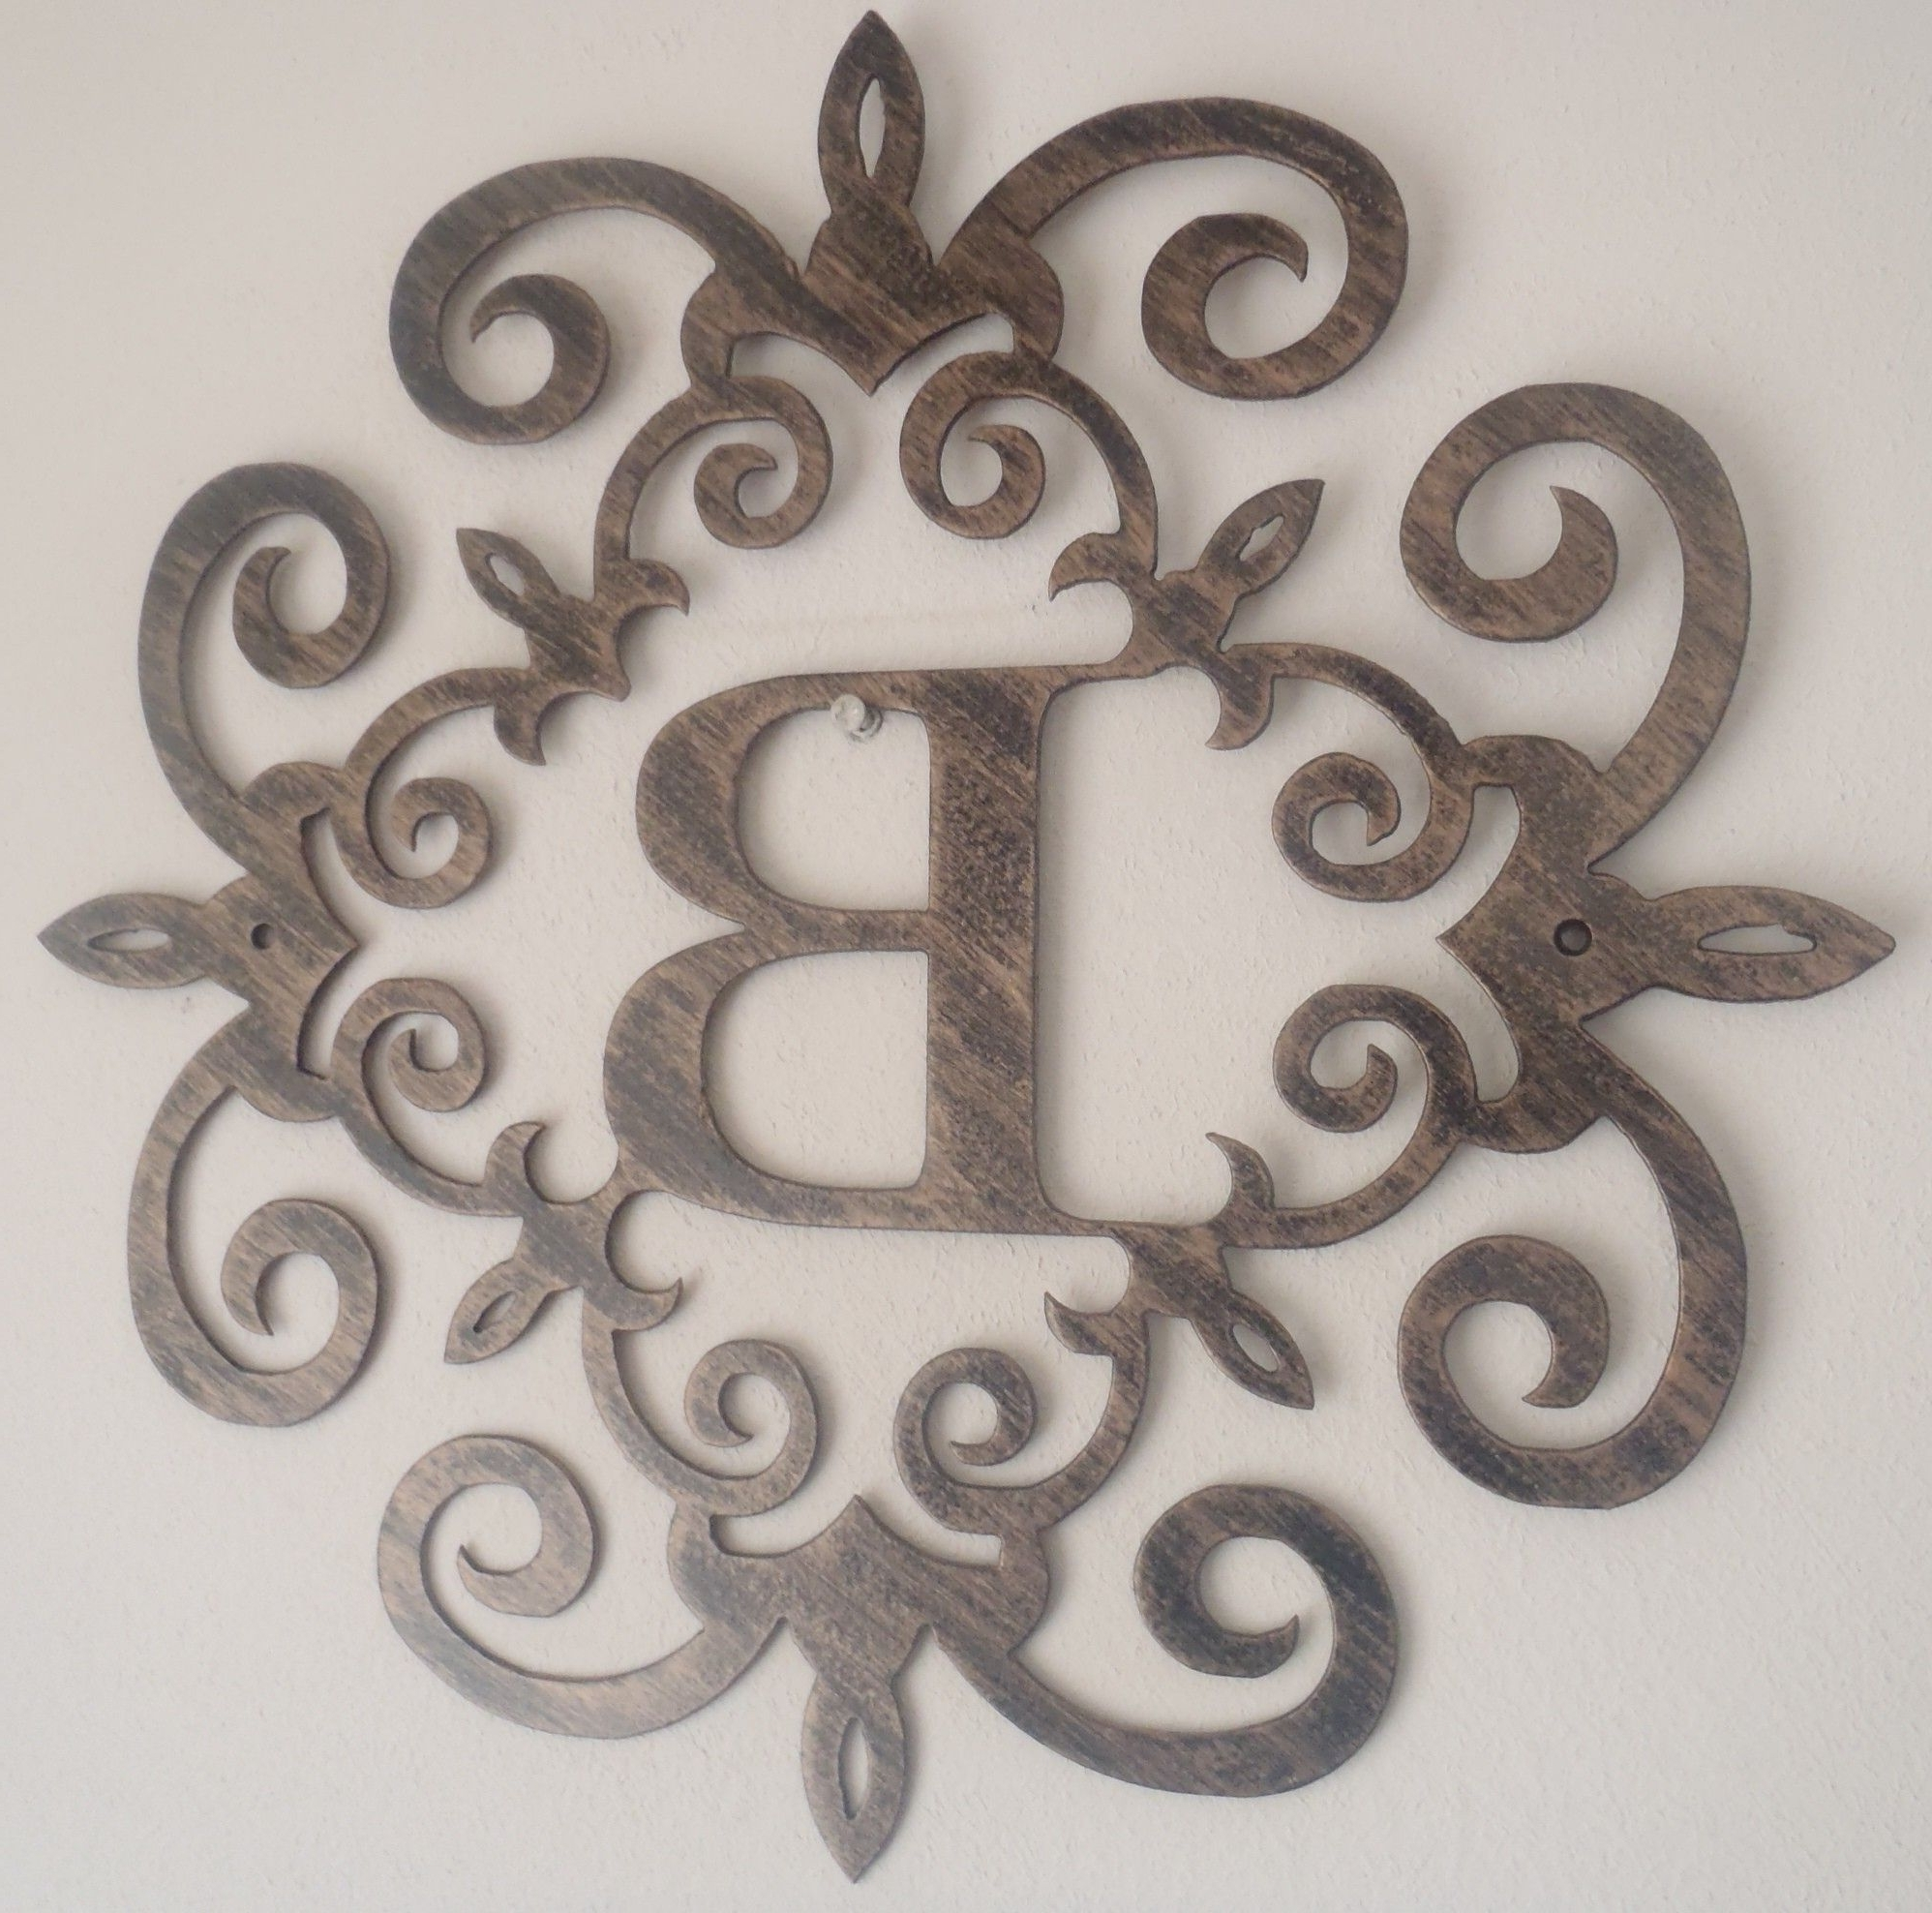 Trendy Family Initial, Monogram Inside A Metal Scroll With B Letter, Wall With Regard To Metal Letter Wall Art (View 13 of 15)